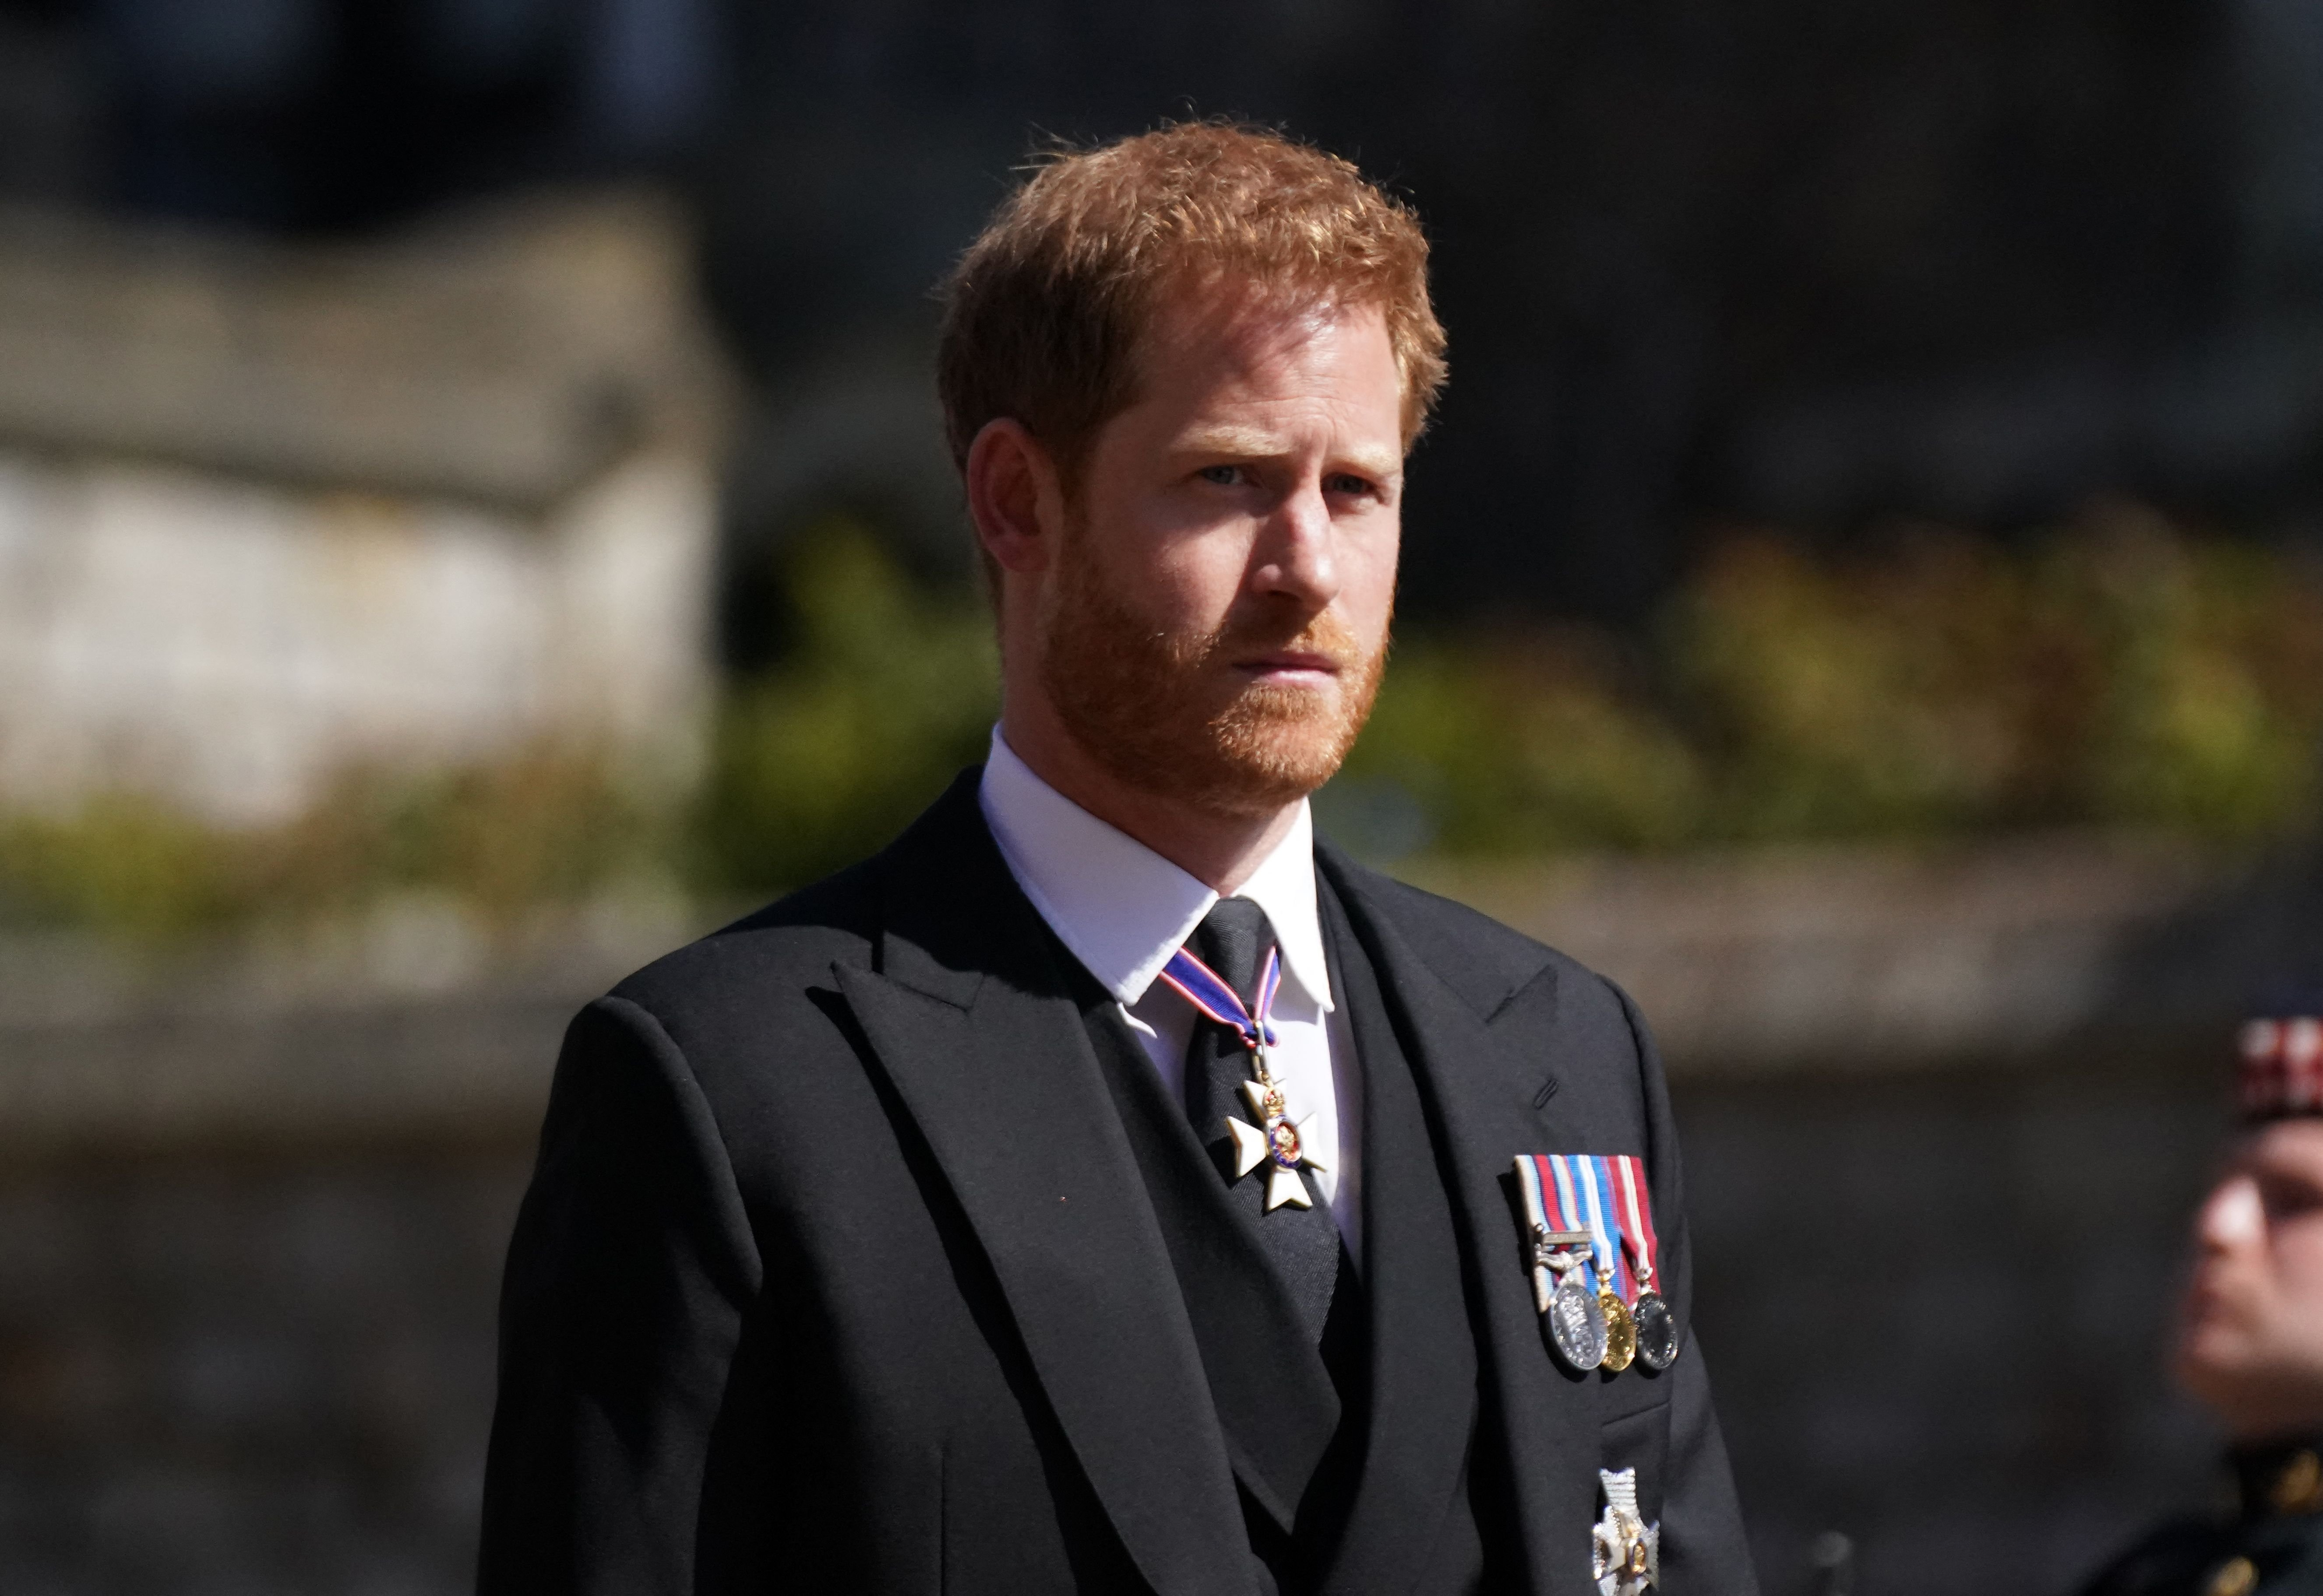 Britain's Prince Harry, Duke of Sussex walks during the funeral procession of Britain's Prince Philip, Duke of Edinburgh to St George's Chapel in Windsor Castle in Windsor, west of London, on April 17, 2021.   Getty Images